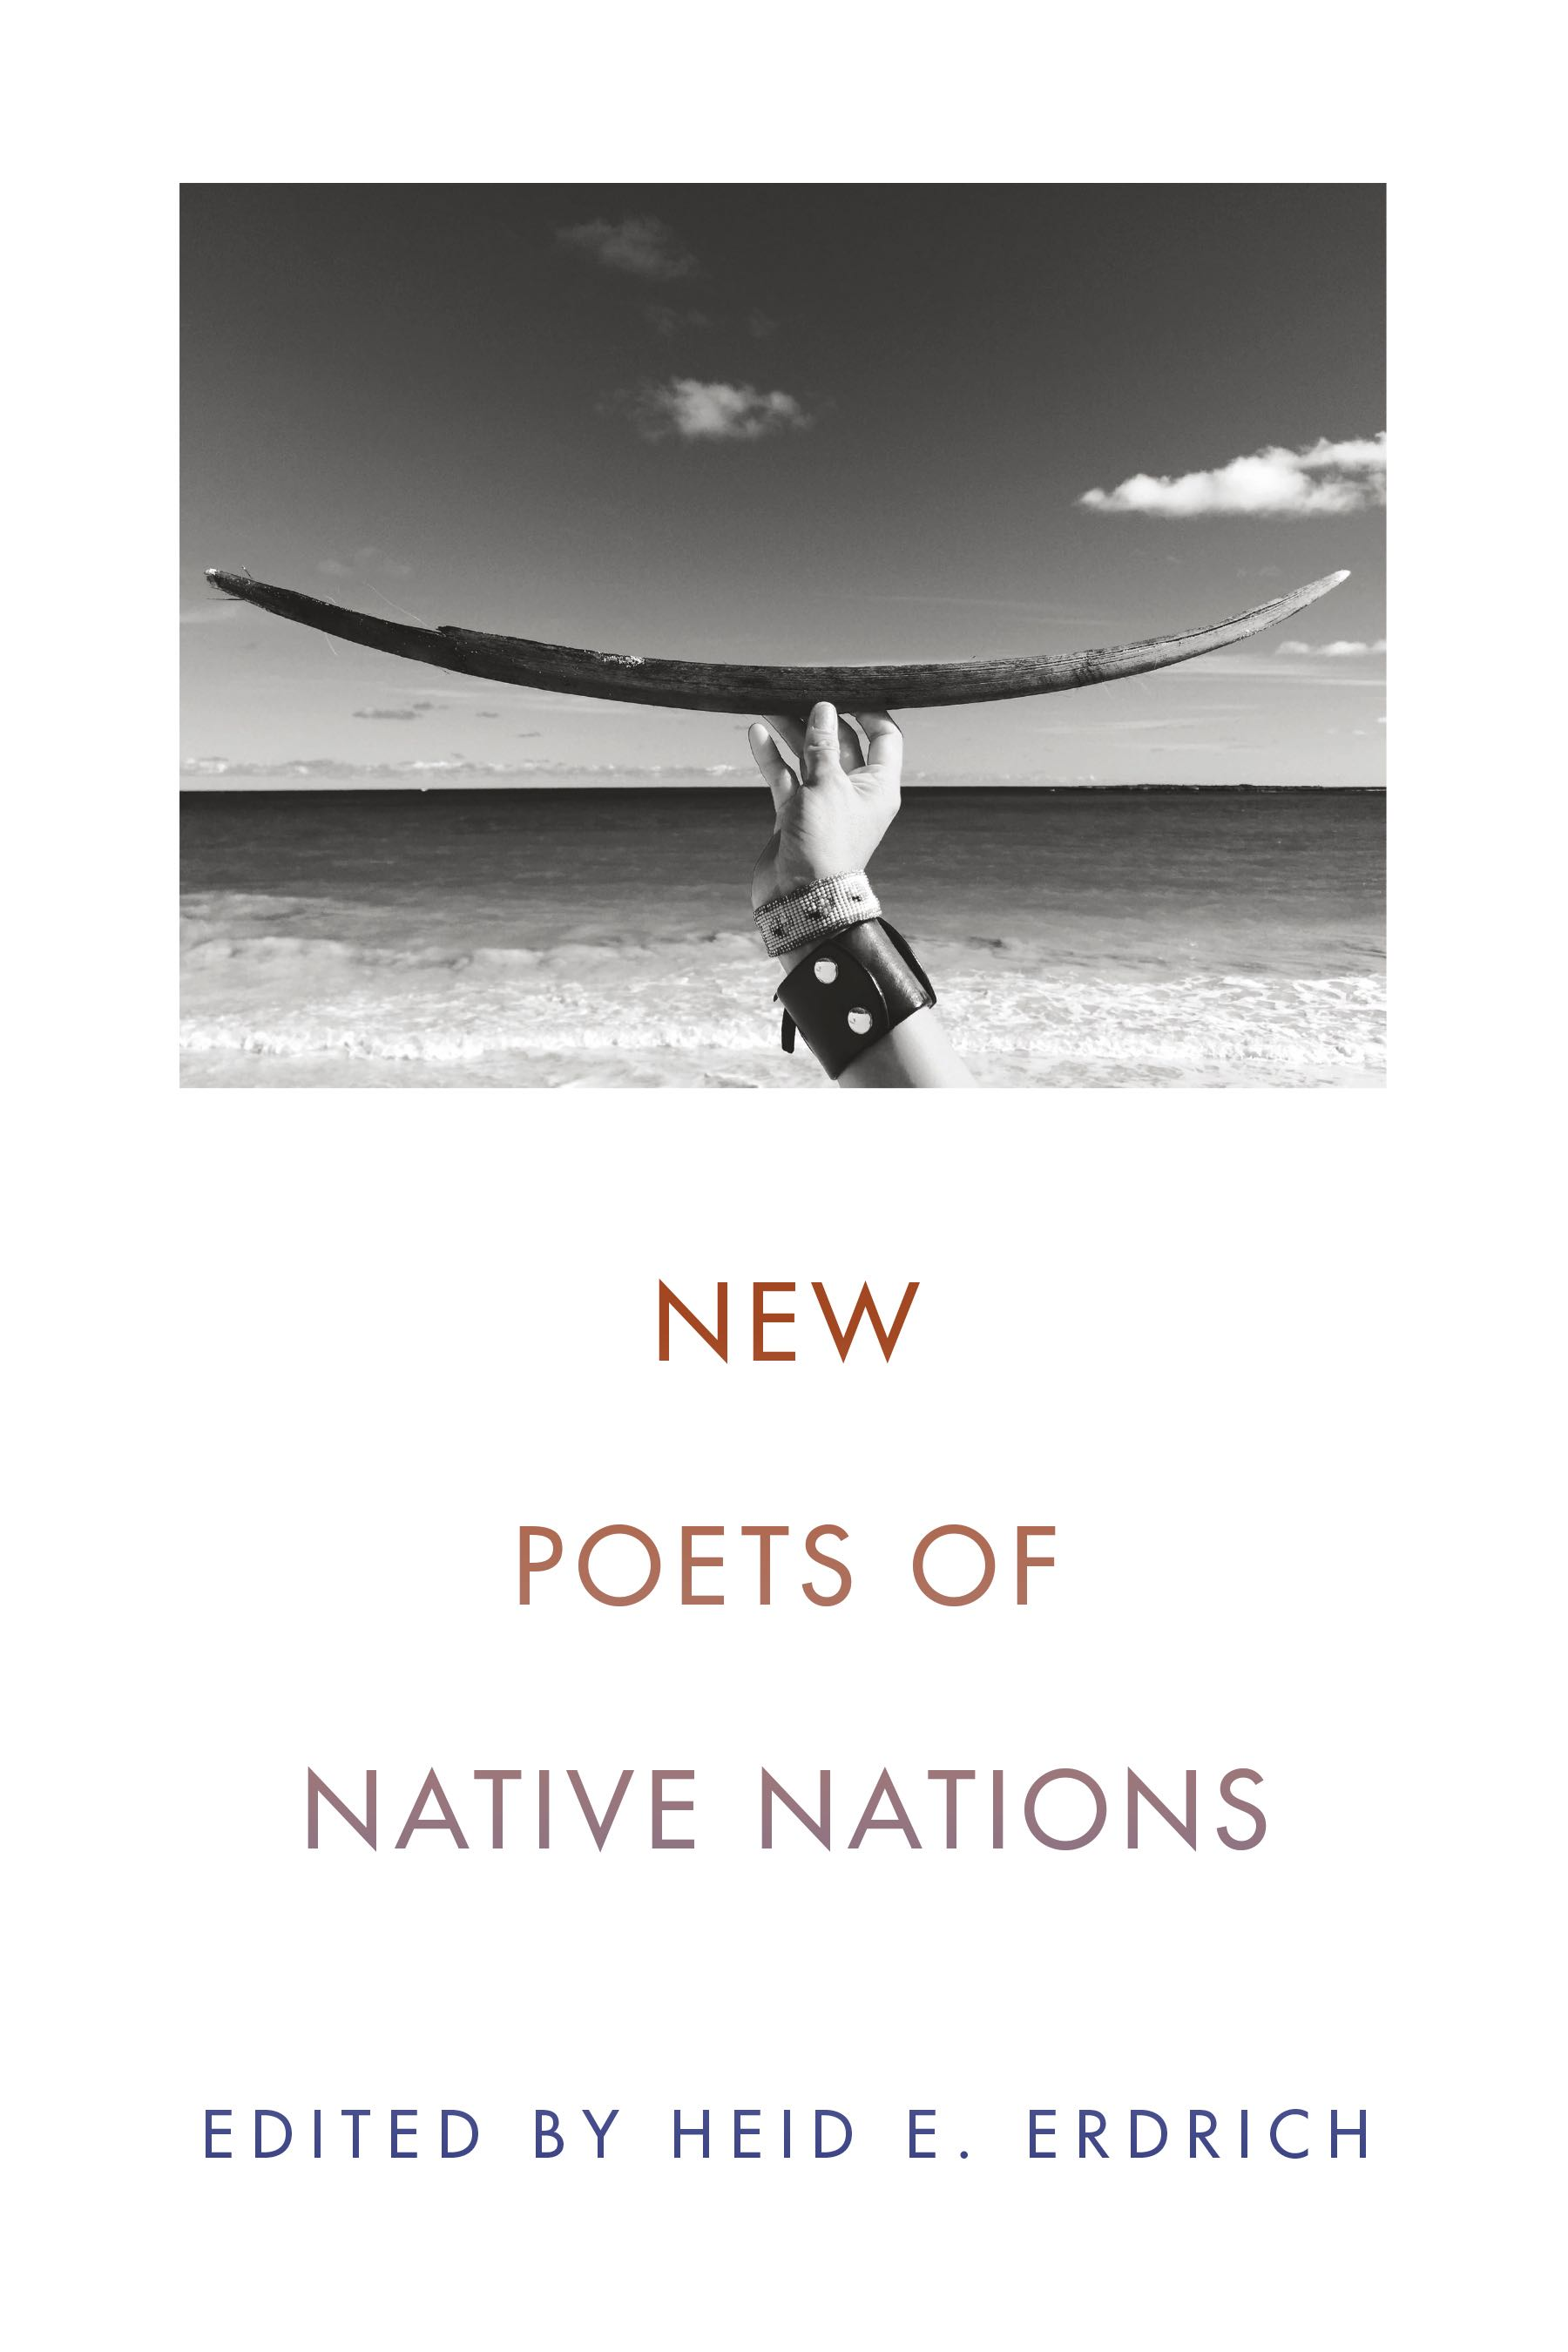 New poets of Native nations book cover